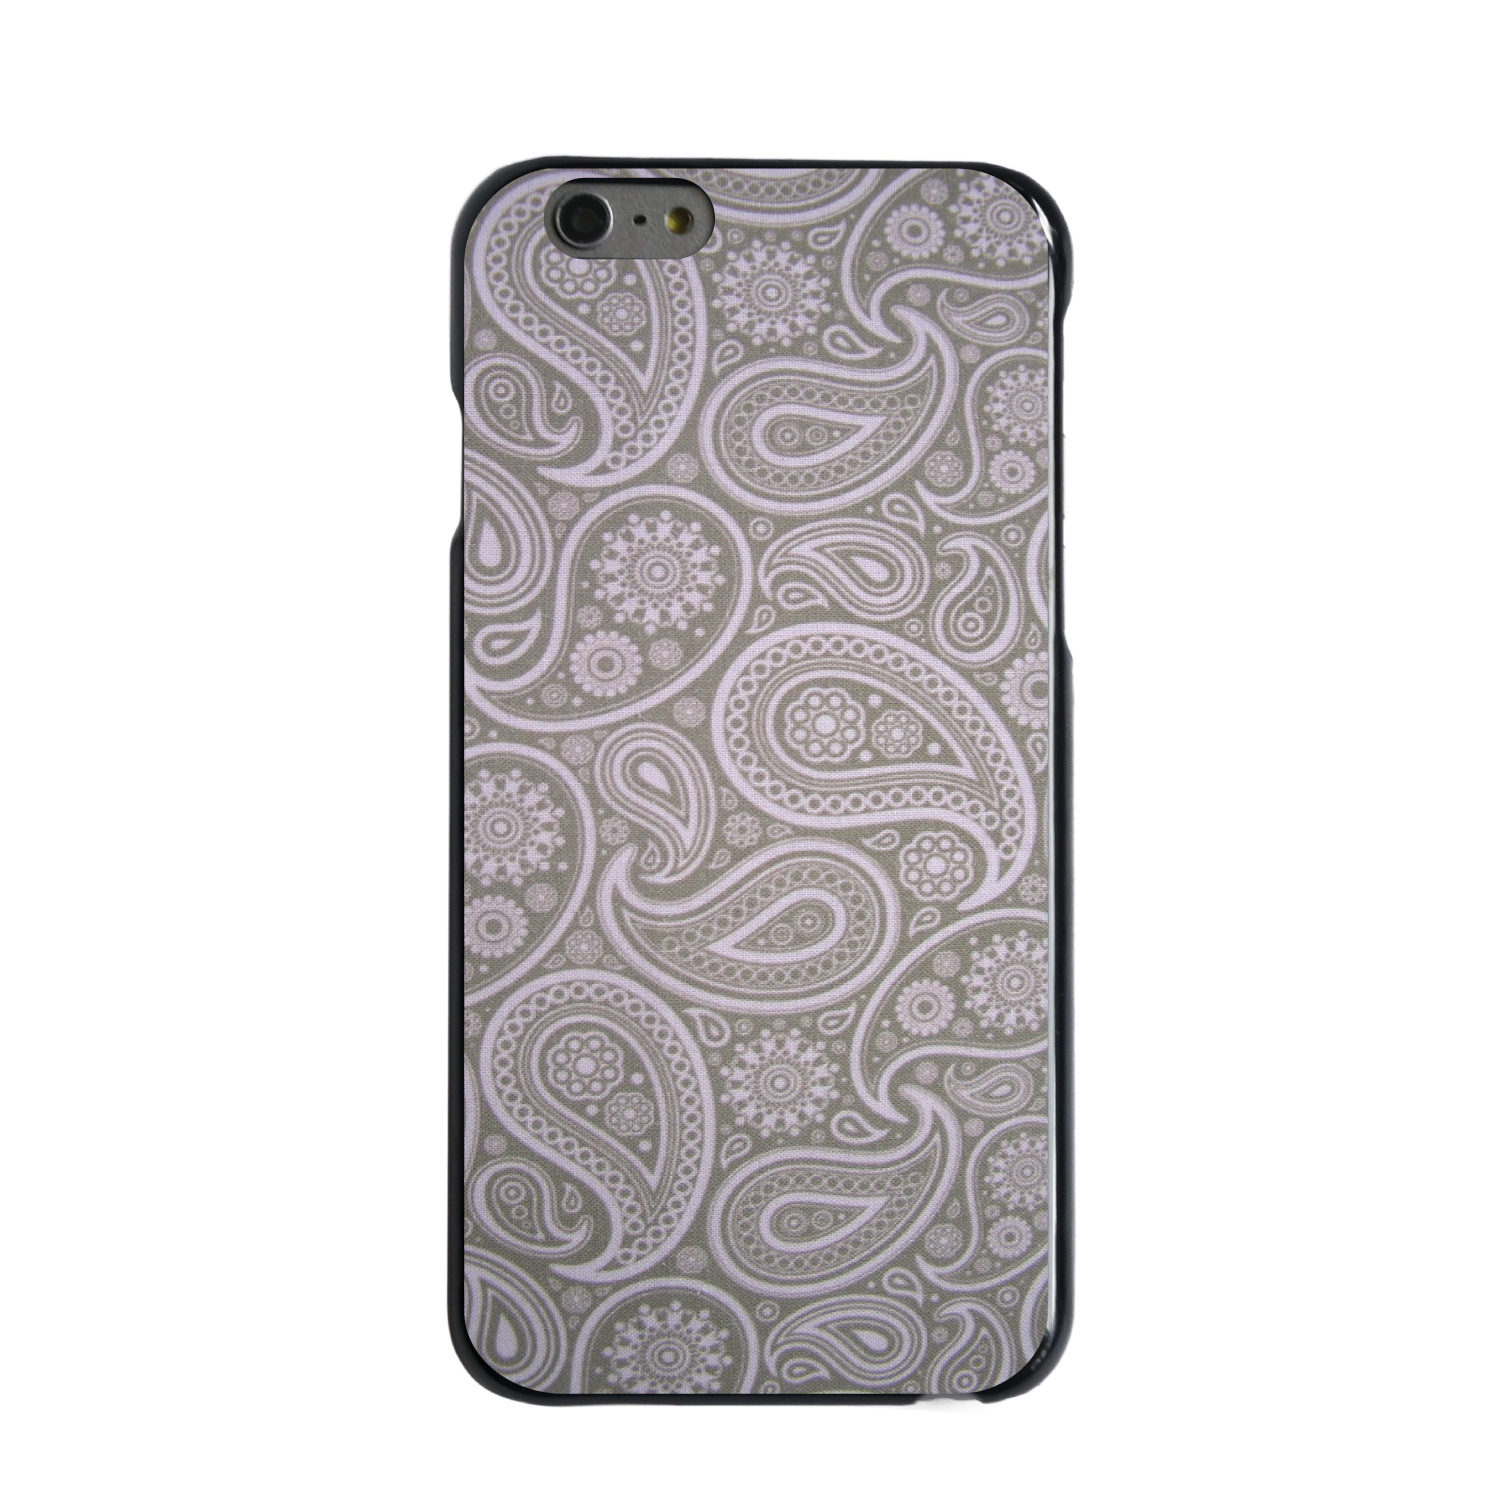 "CUSTOM Black Hard Plastic Snap-On Case for Apple iPhone 6 PLUS / 6S PLUS (5.5"" Screen) - Grey Black Paisley"